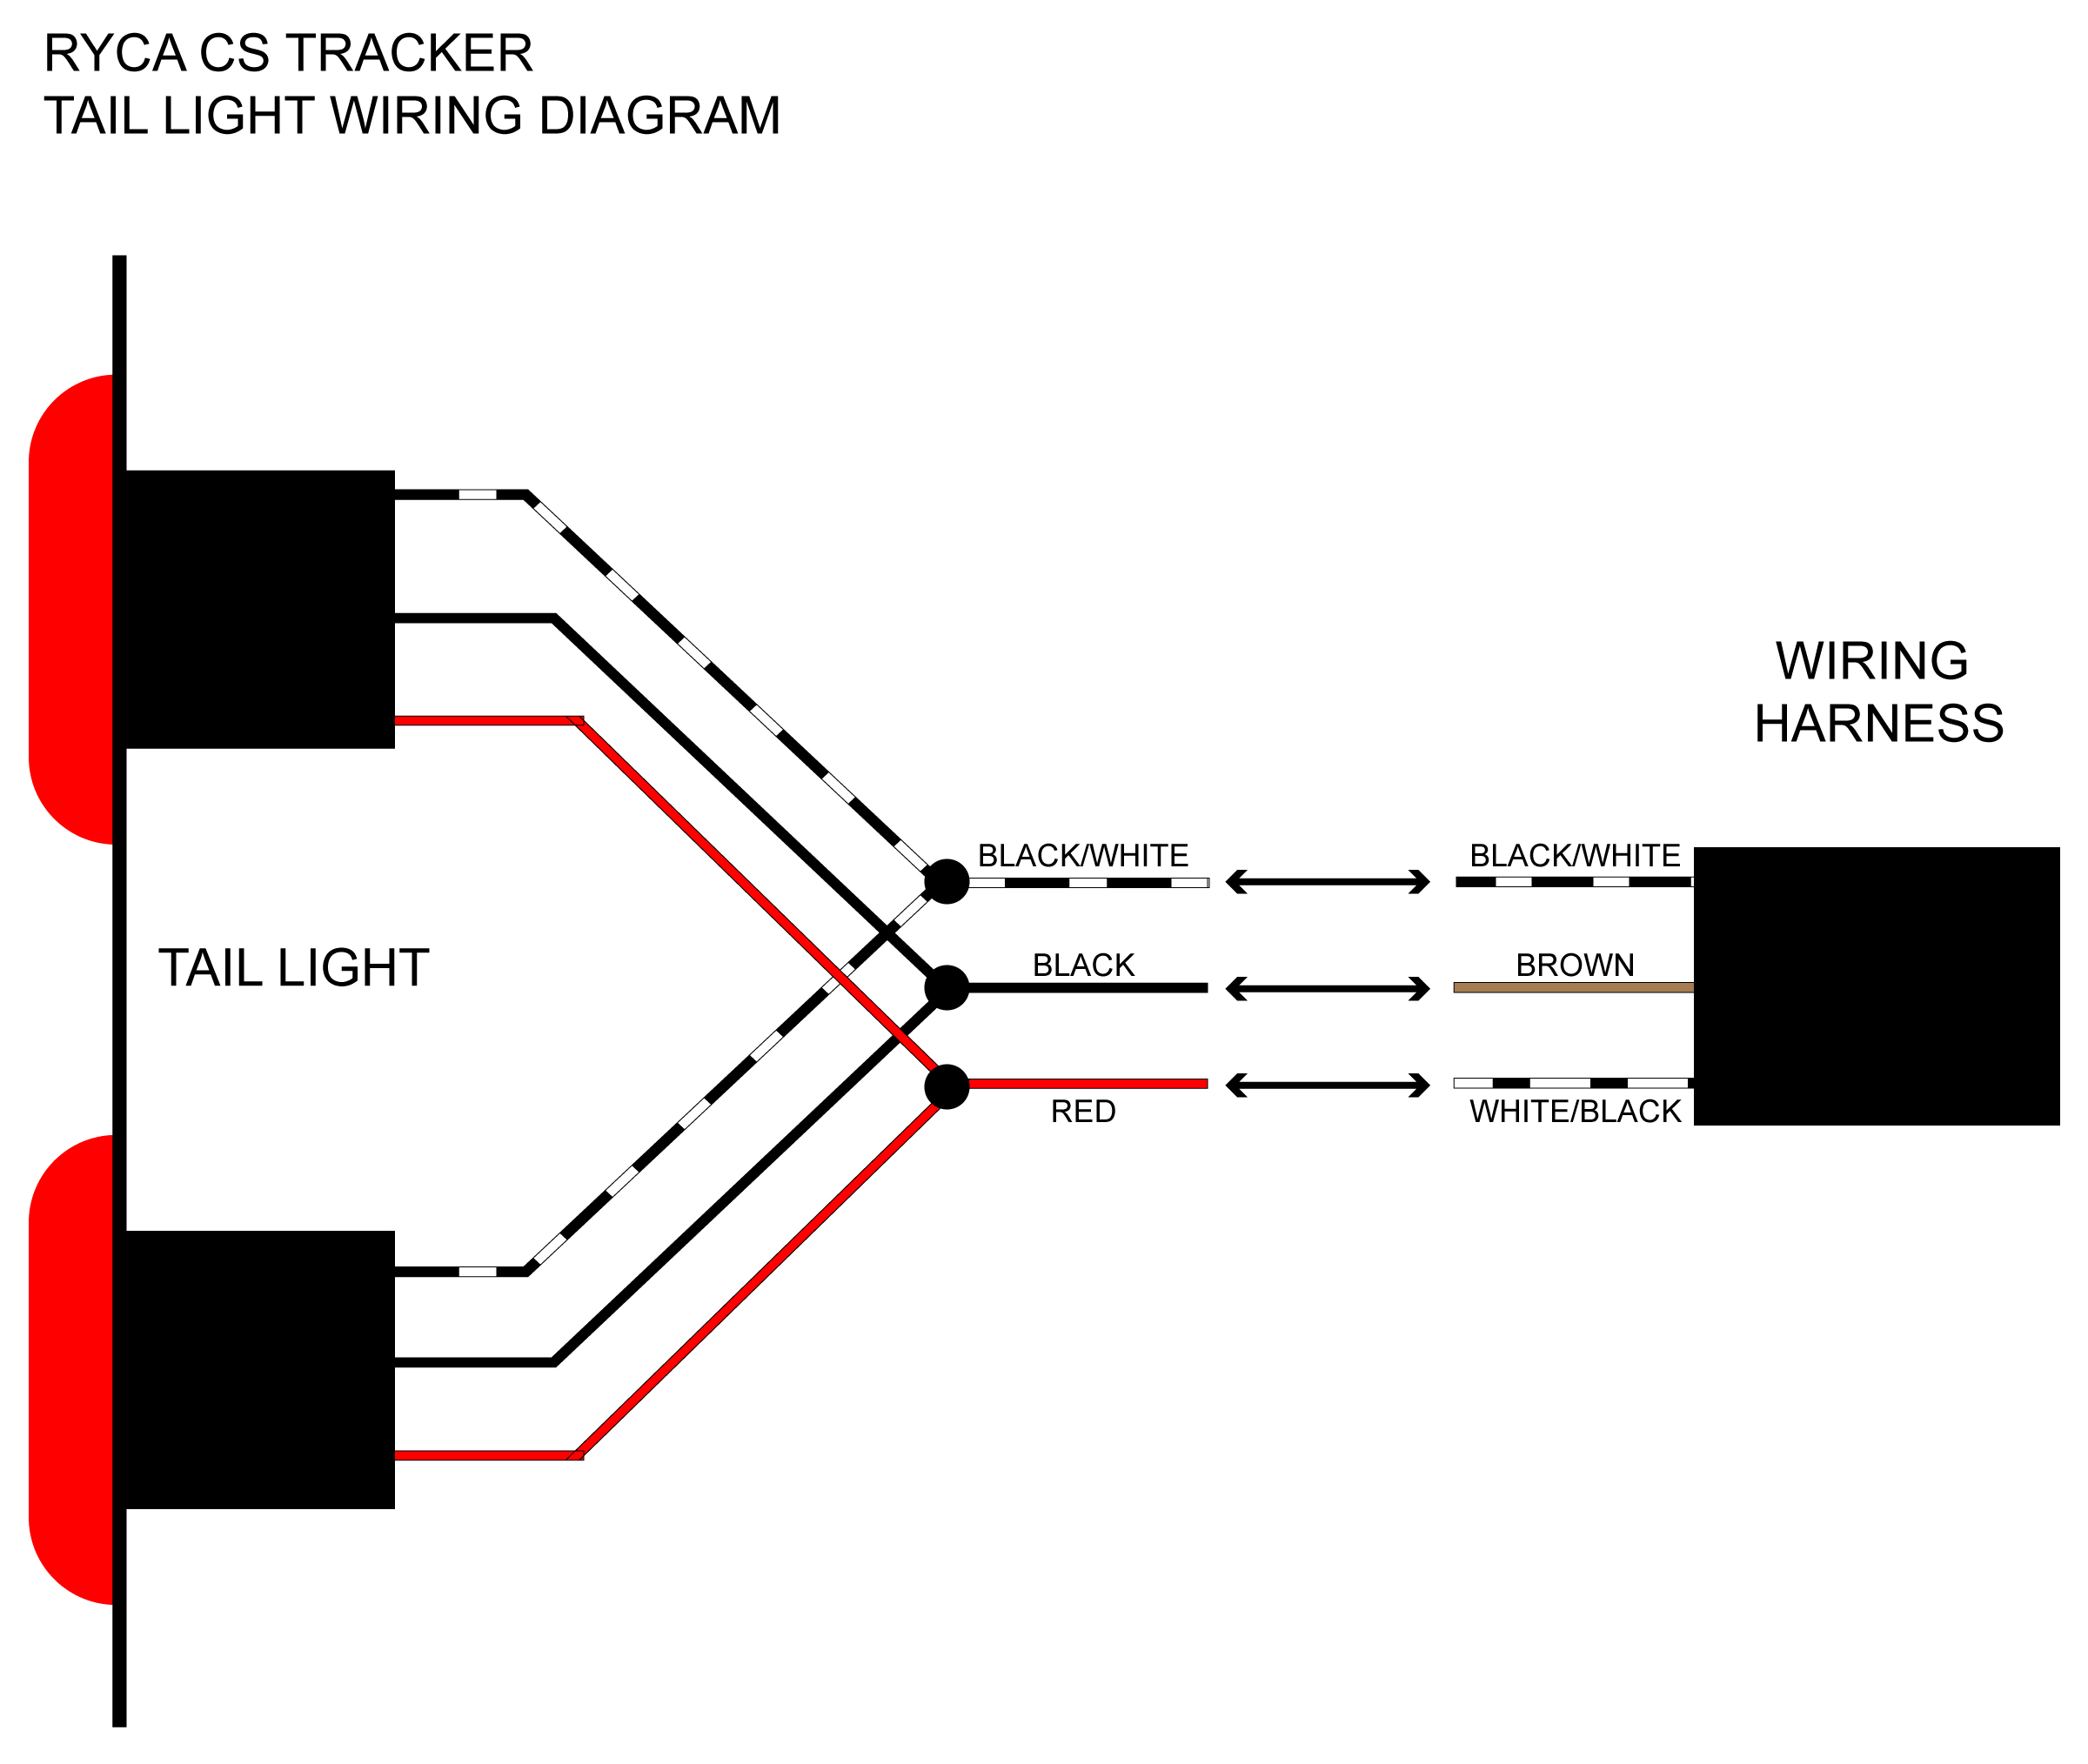 Trailer Tail Light Wiring Diagram | Manual E-Books - Led Trailer Lights Wiring Diagram